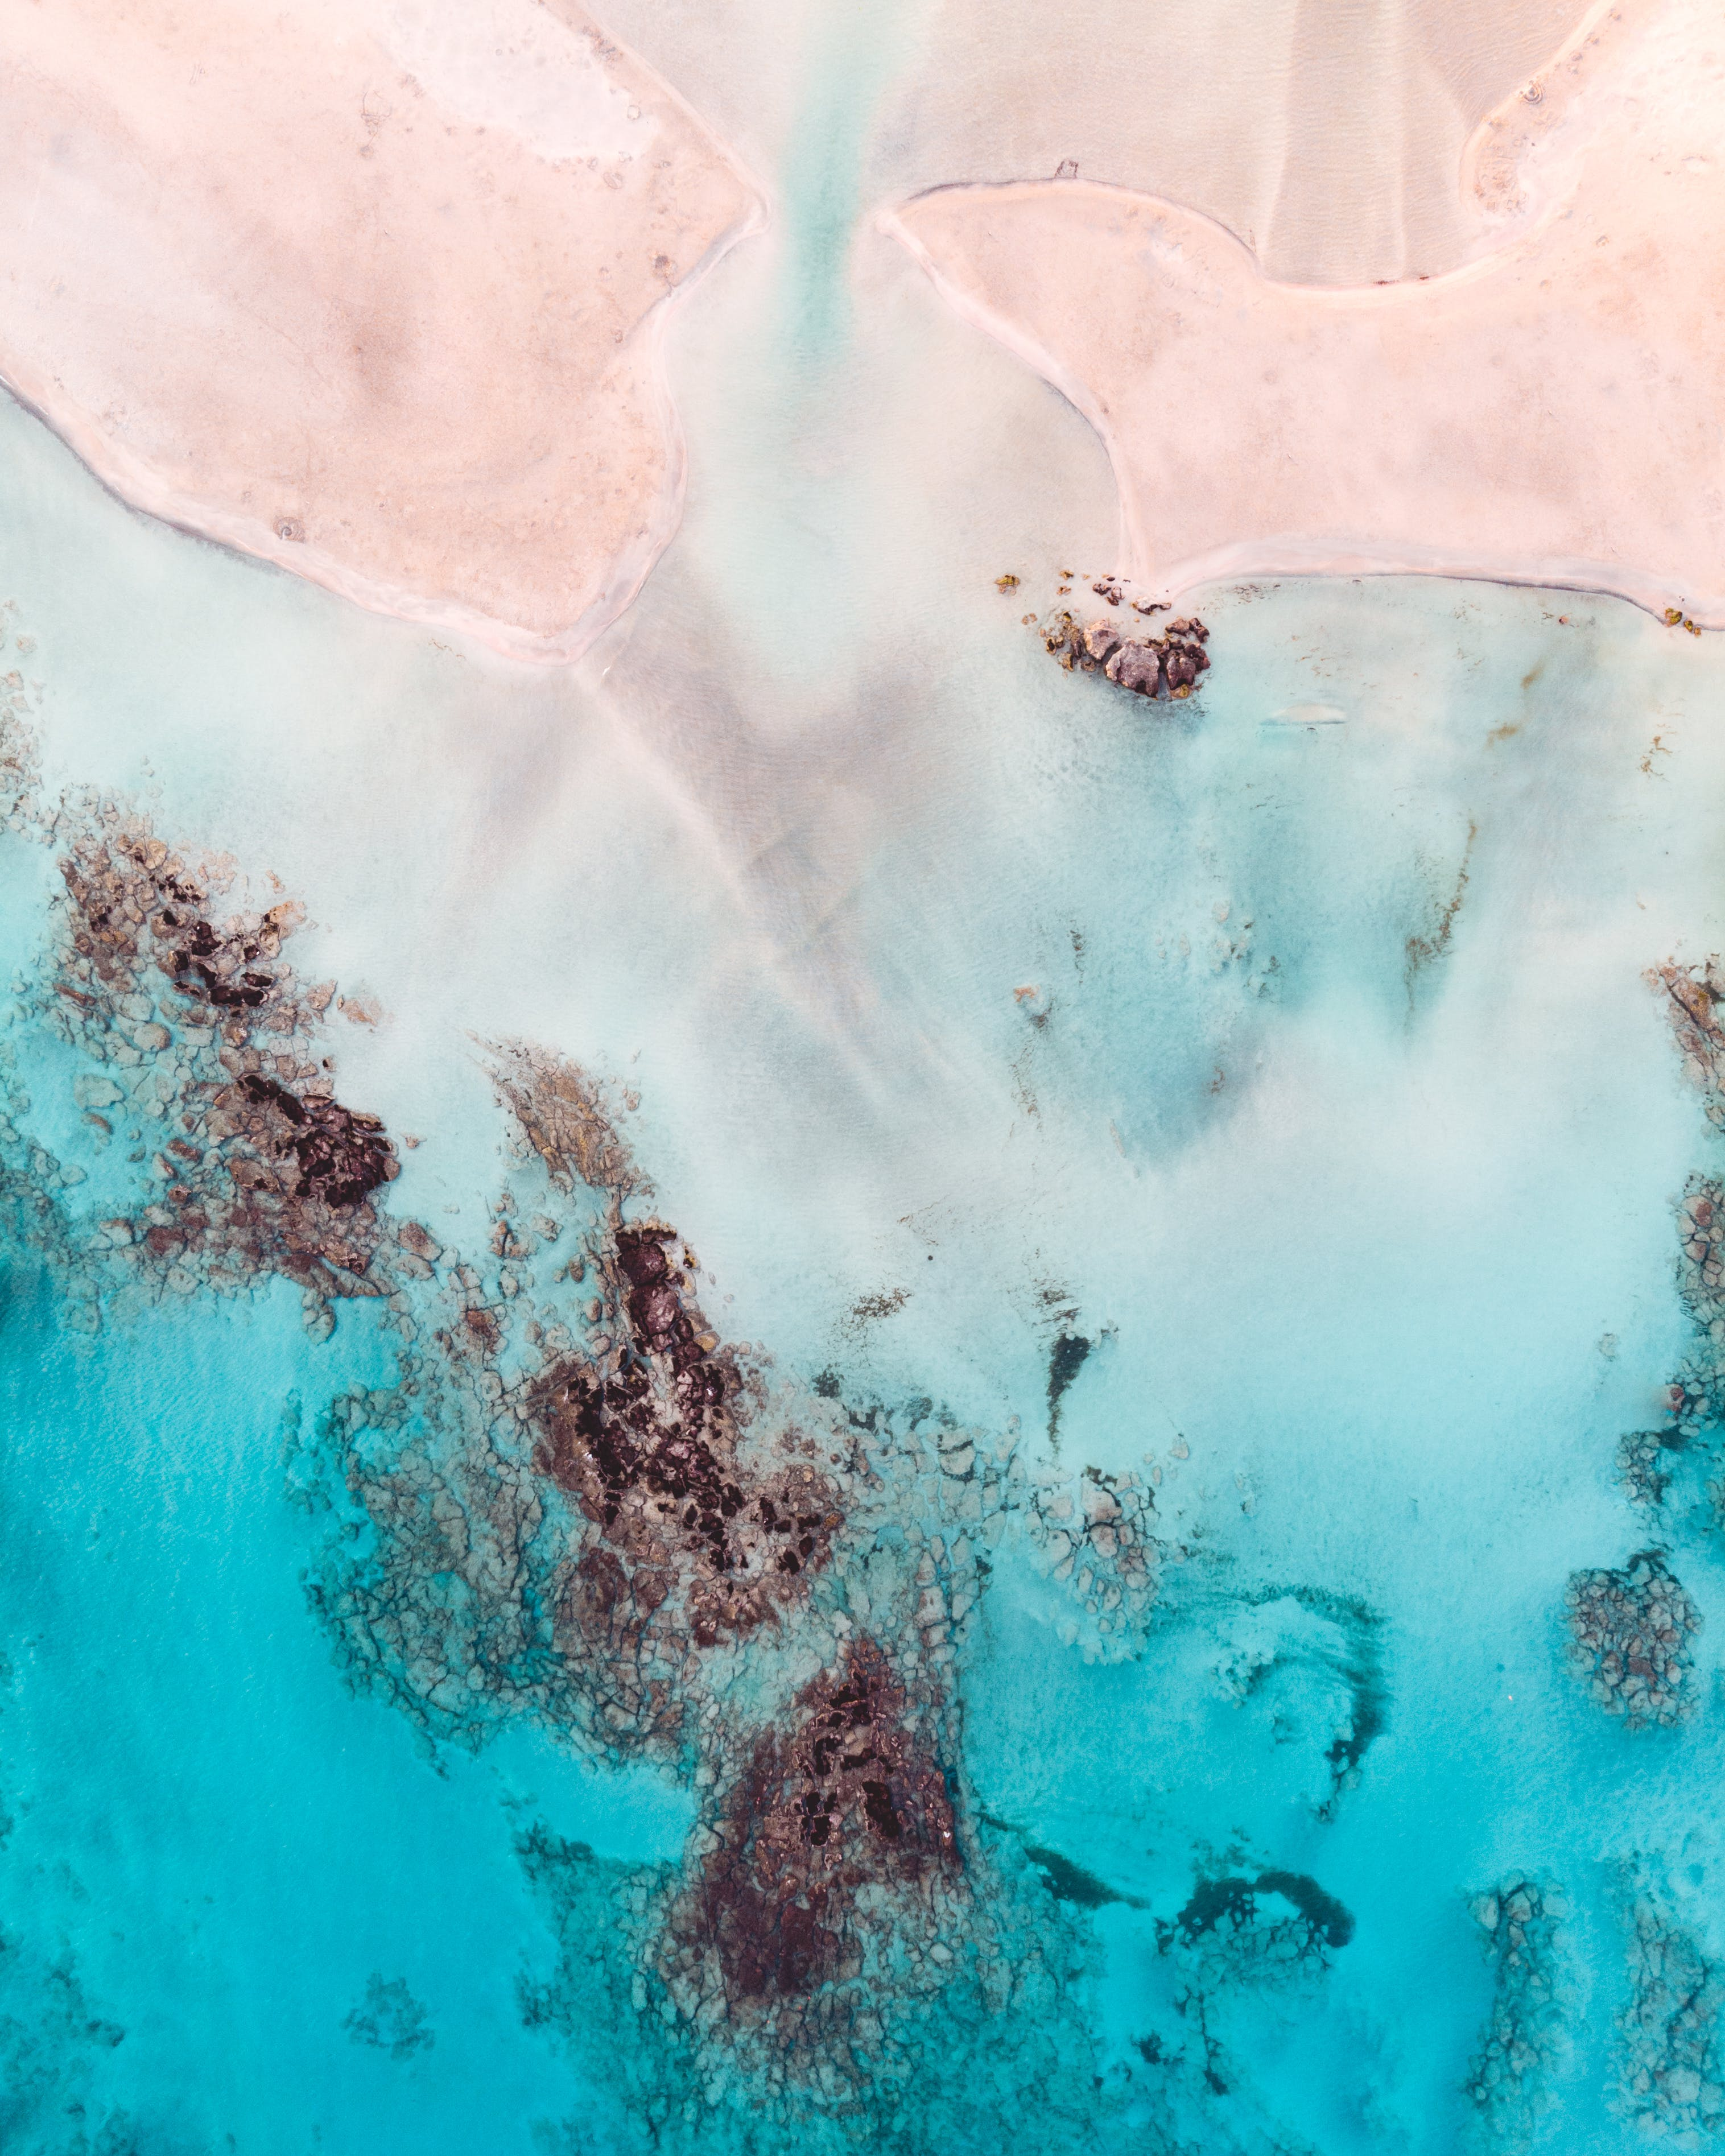 Free stock photo of aerial photography, bird's eye view, colors, daylight